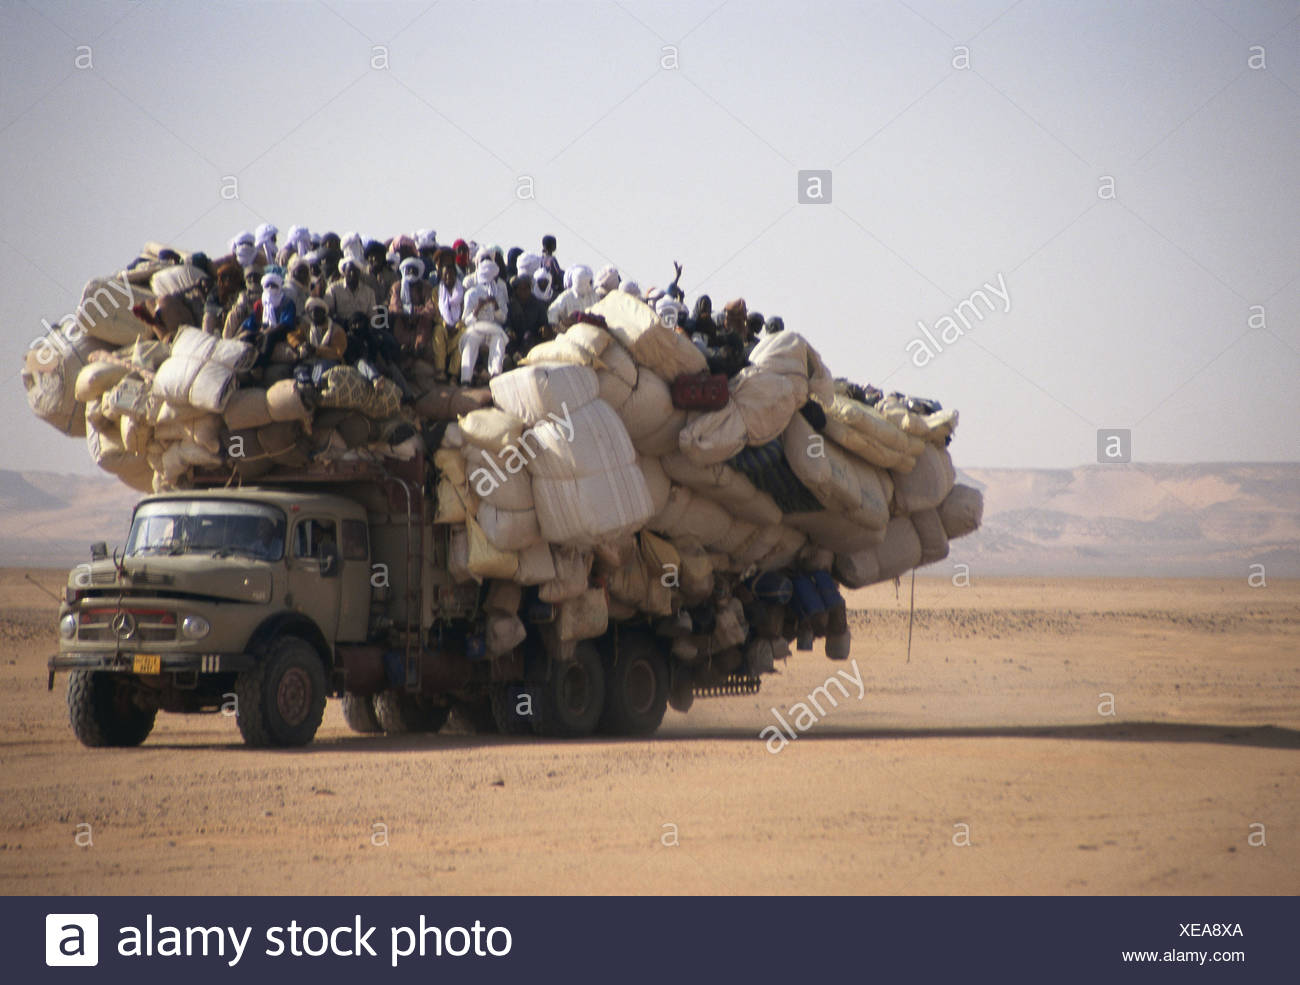 Chad, Borkou, wadi Doum, Sand runway, truck, overcrowds, Central, Africa, landlocked country, Sahara, desert, wild scenery, truck, truck, transport, promotion, costs, people, locals, florid Stock Photo